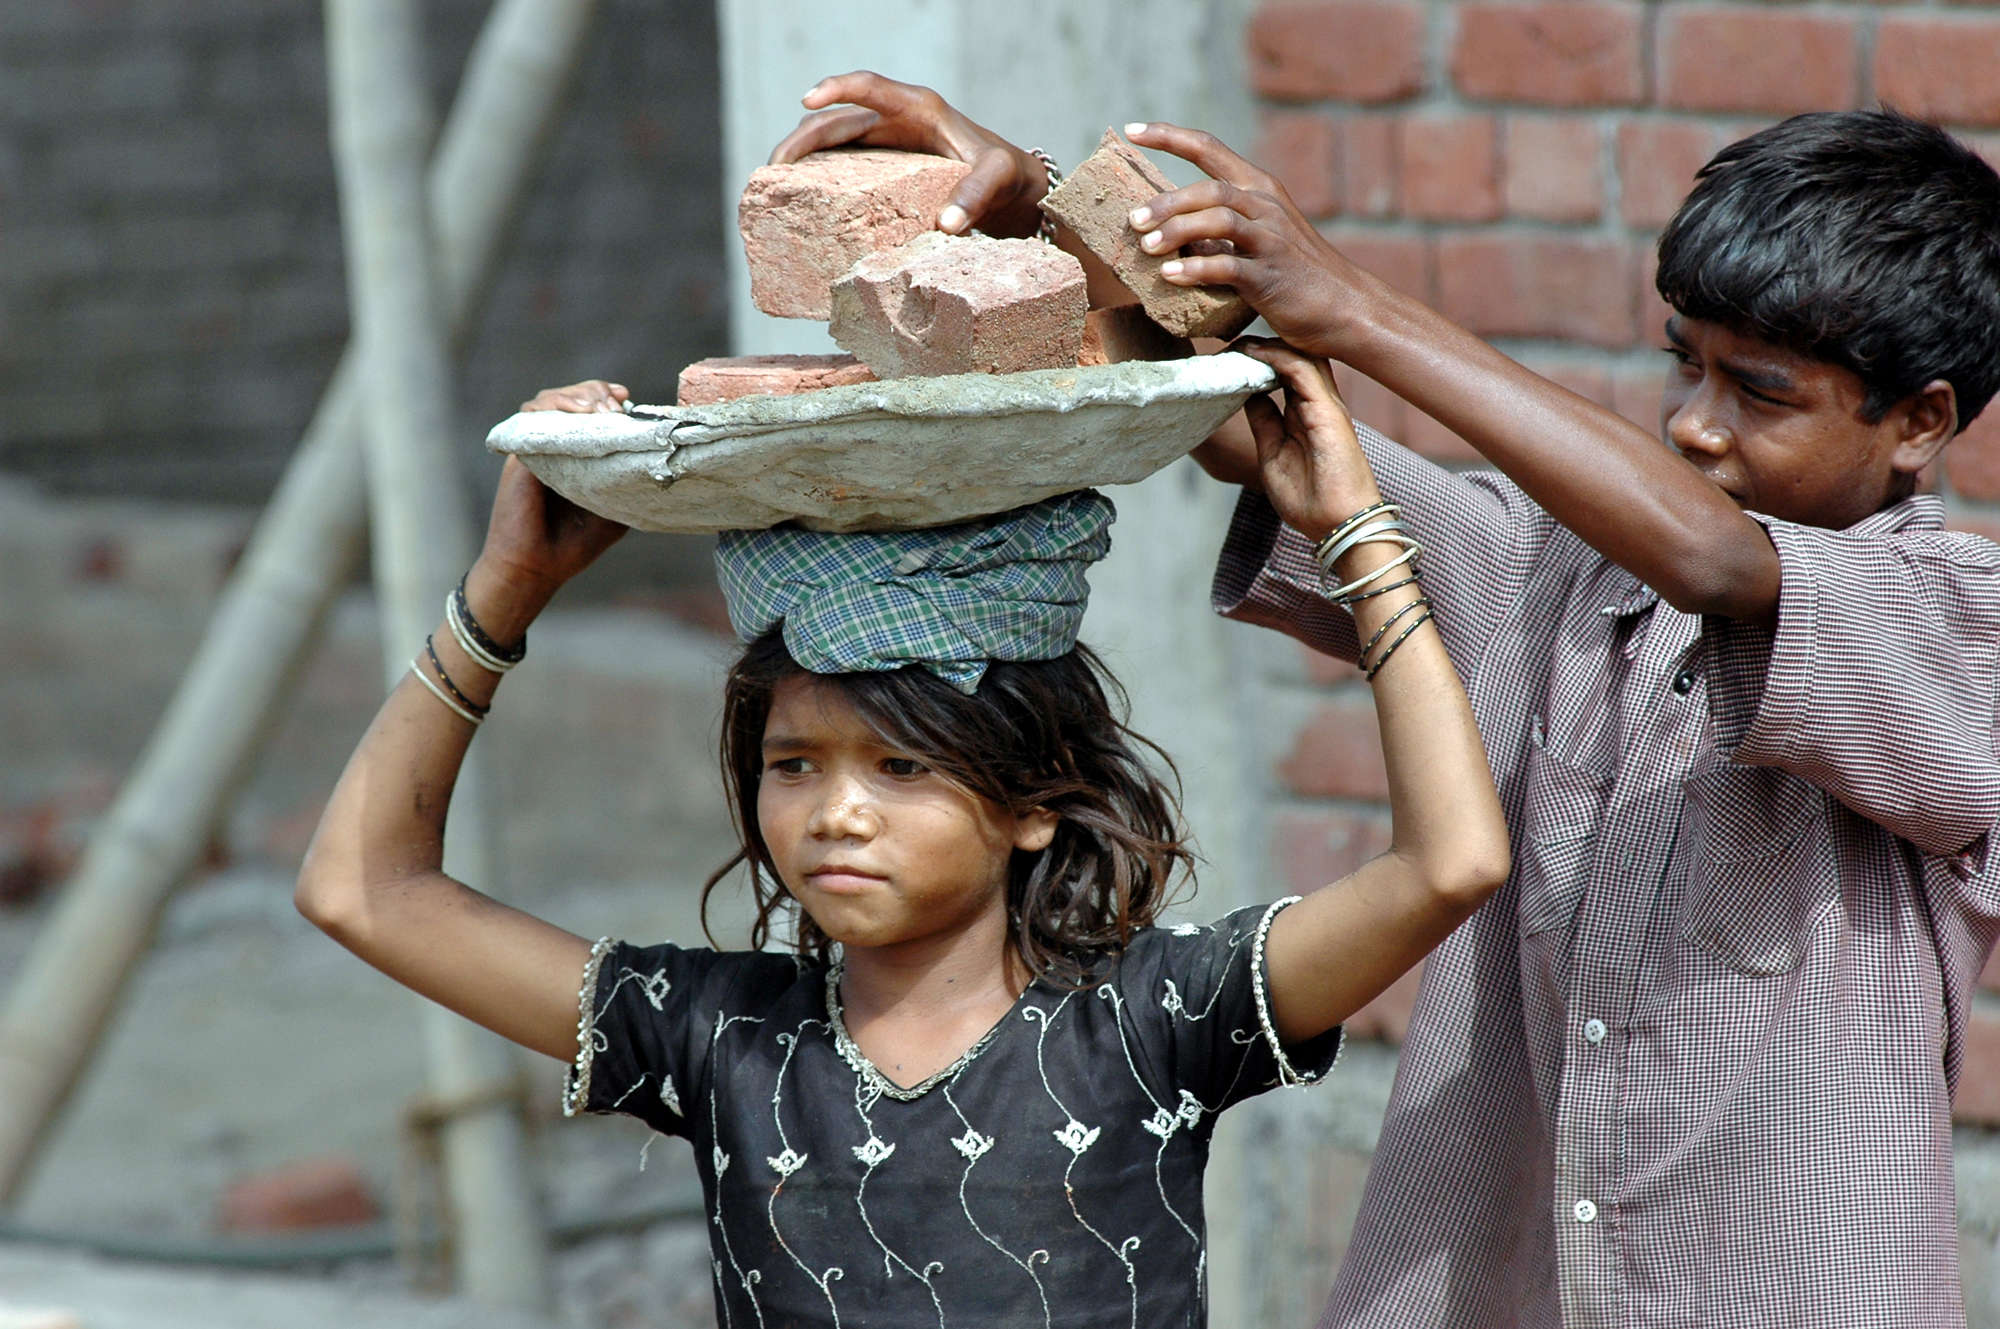 Stop enslavement of our children: Despite laws criminalising it, child  labour and trafficking continue apace